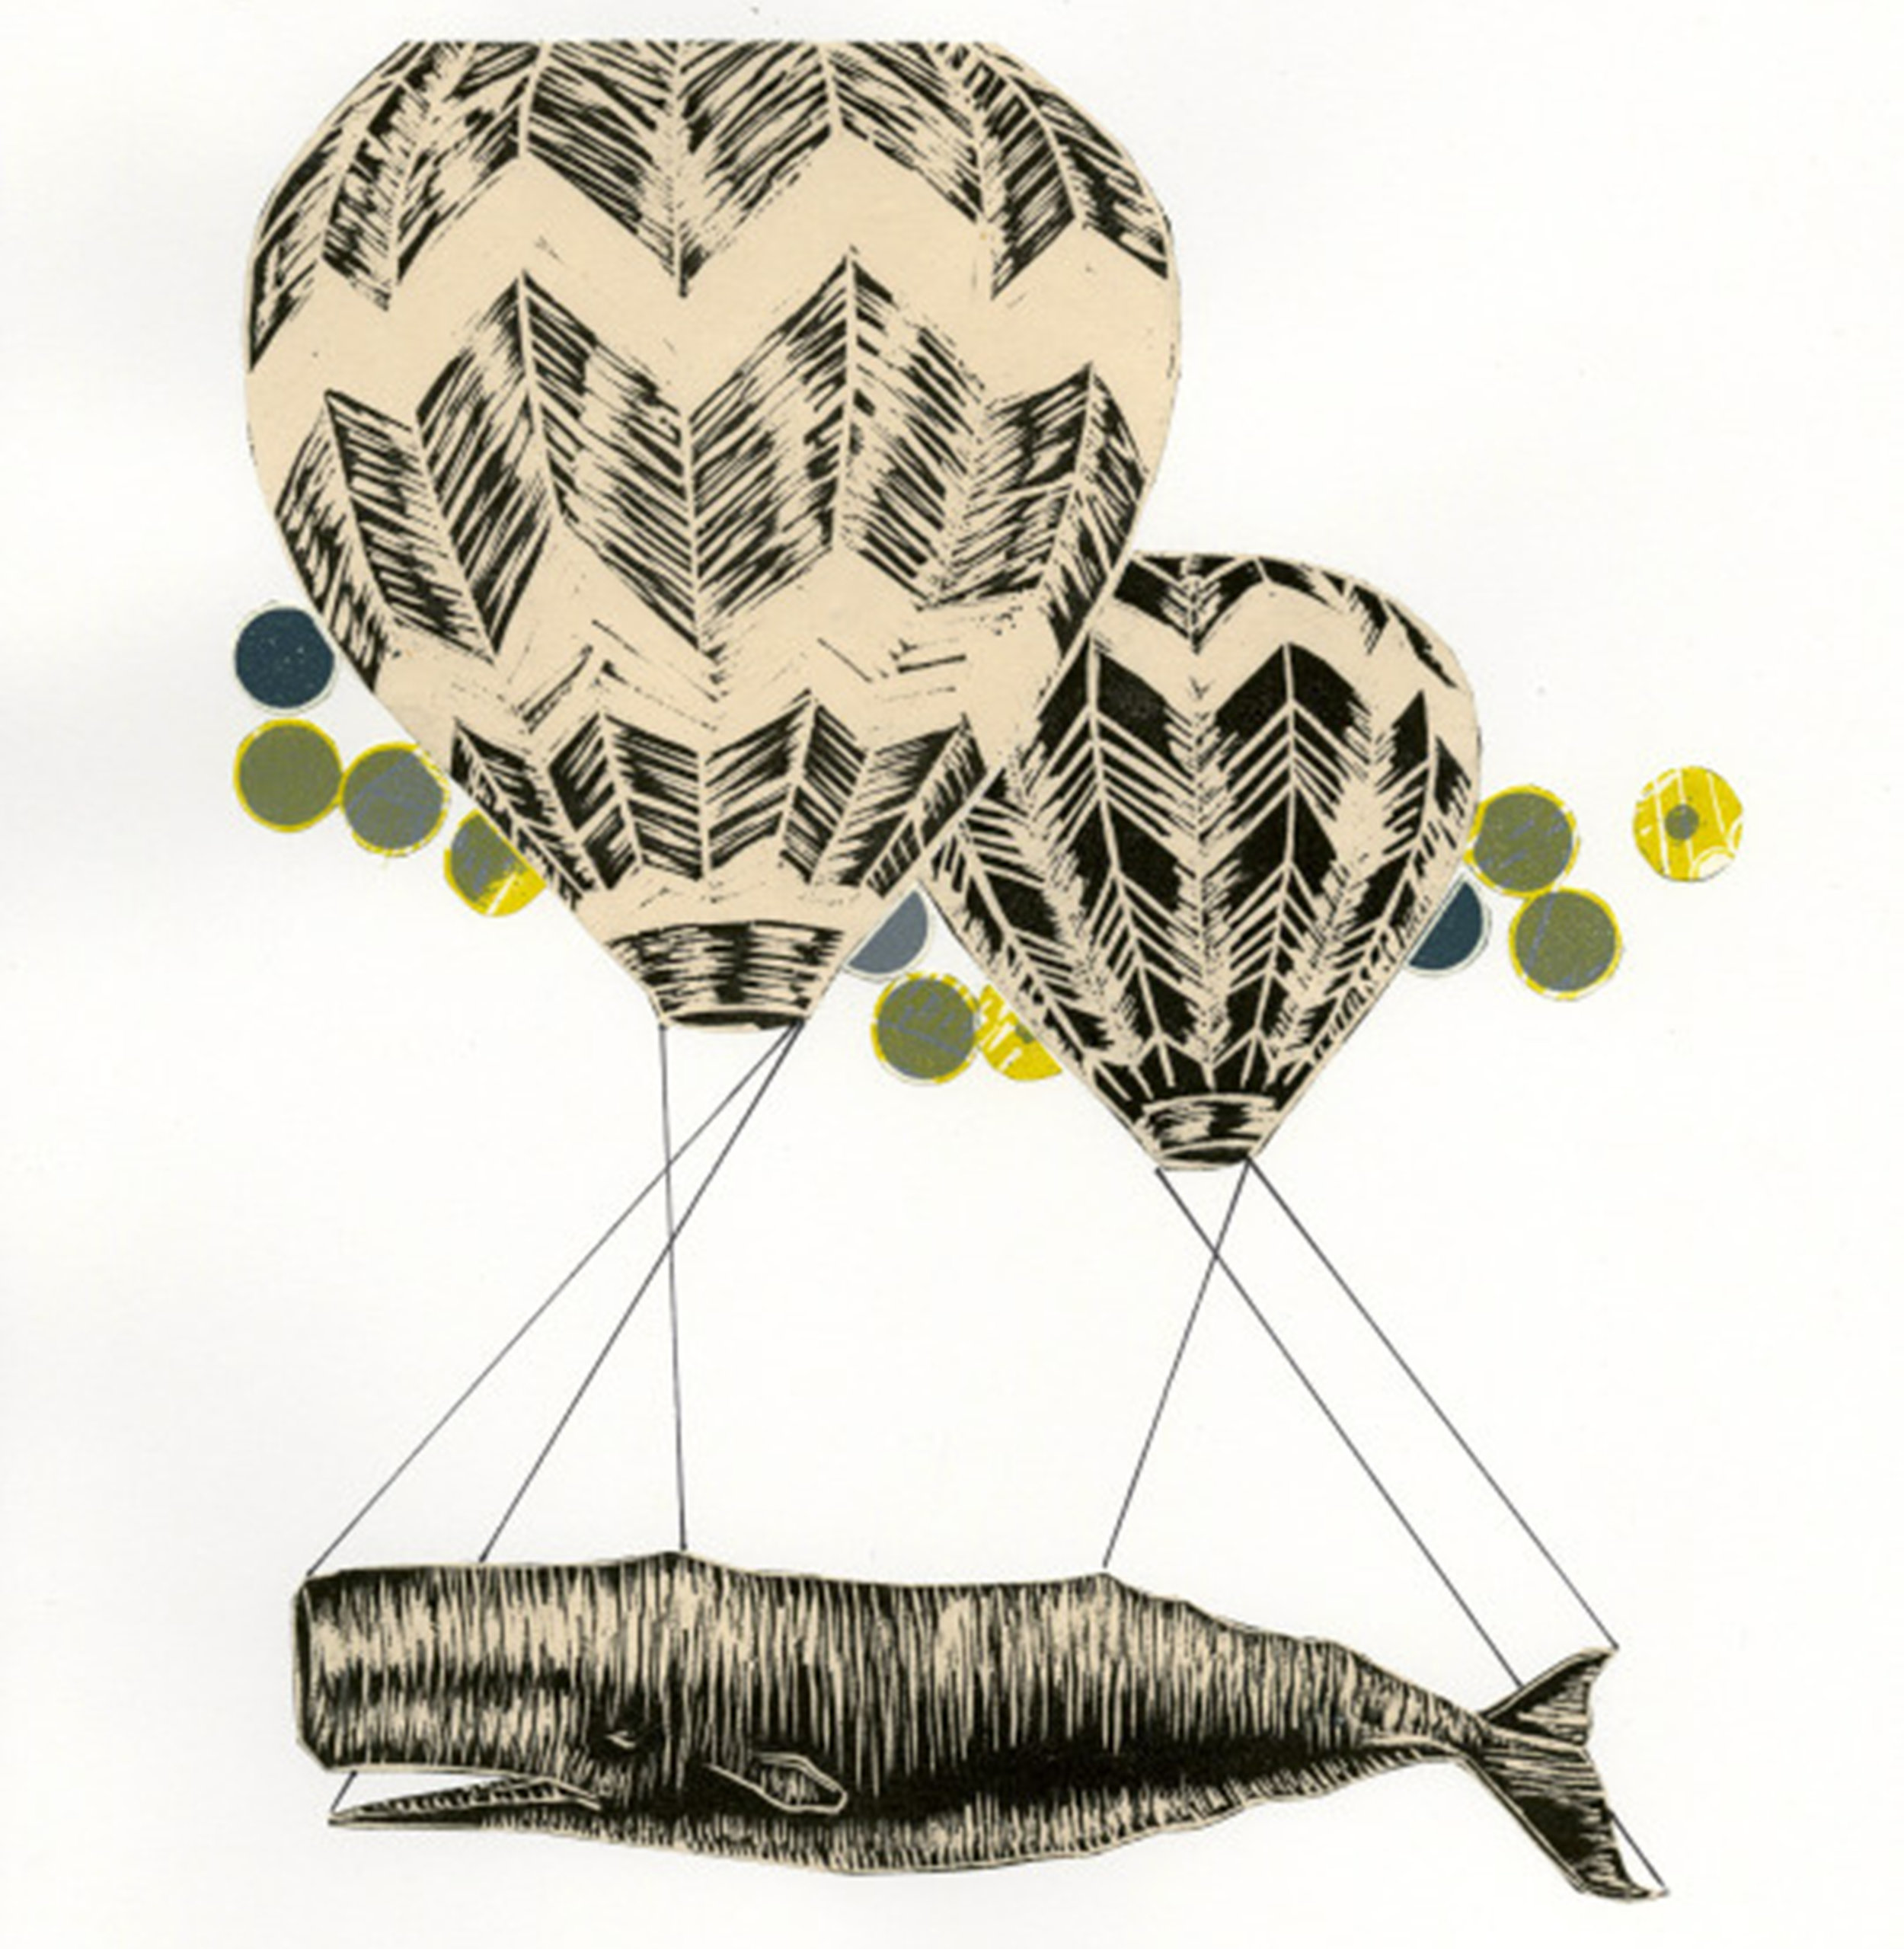 Nancy Ariza, Whale Transport, collage with relief, 2013